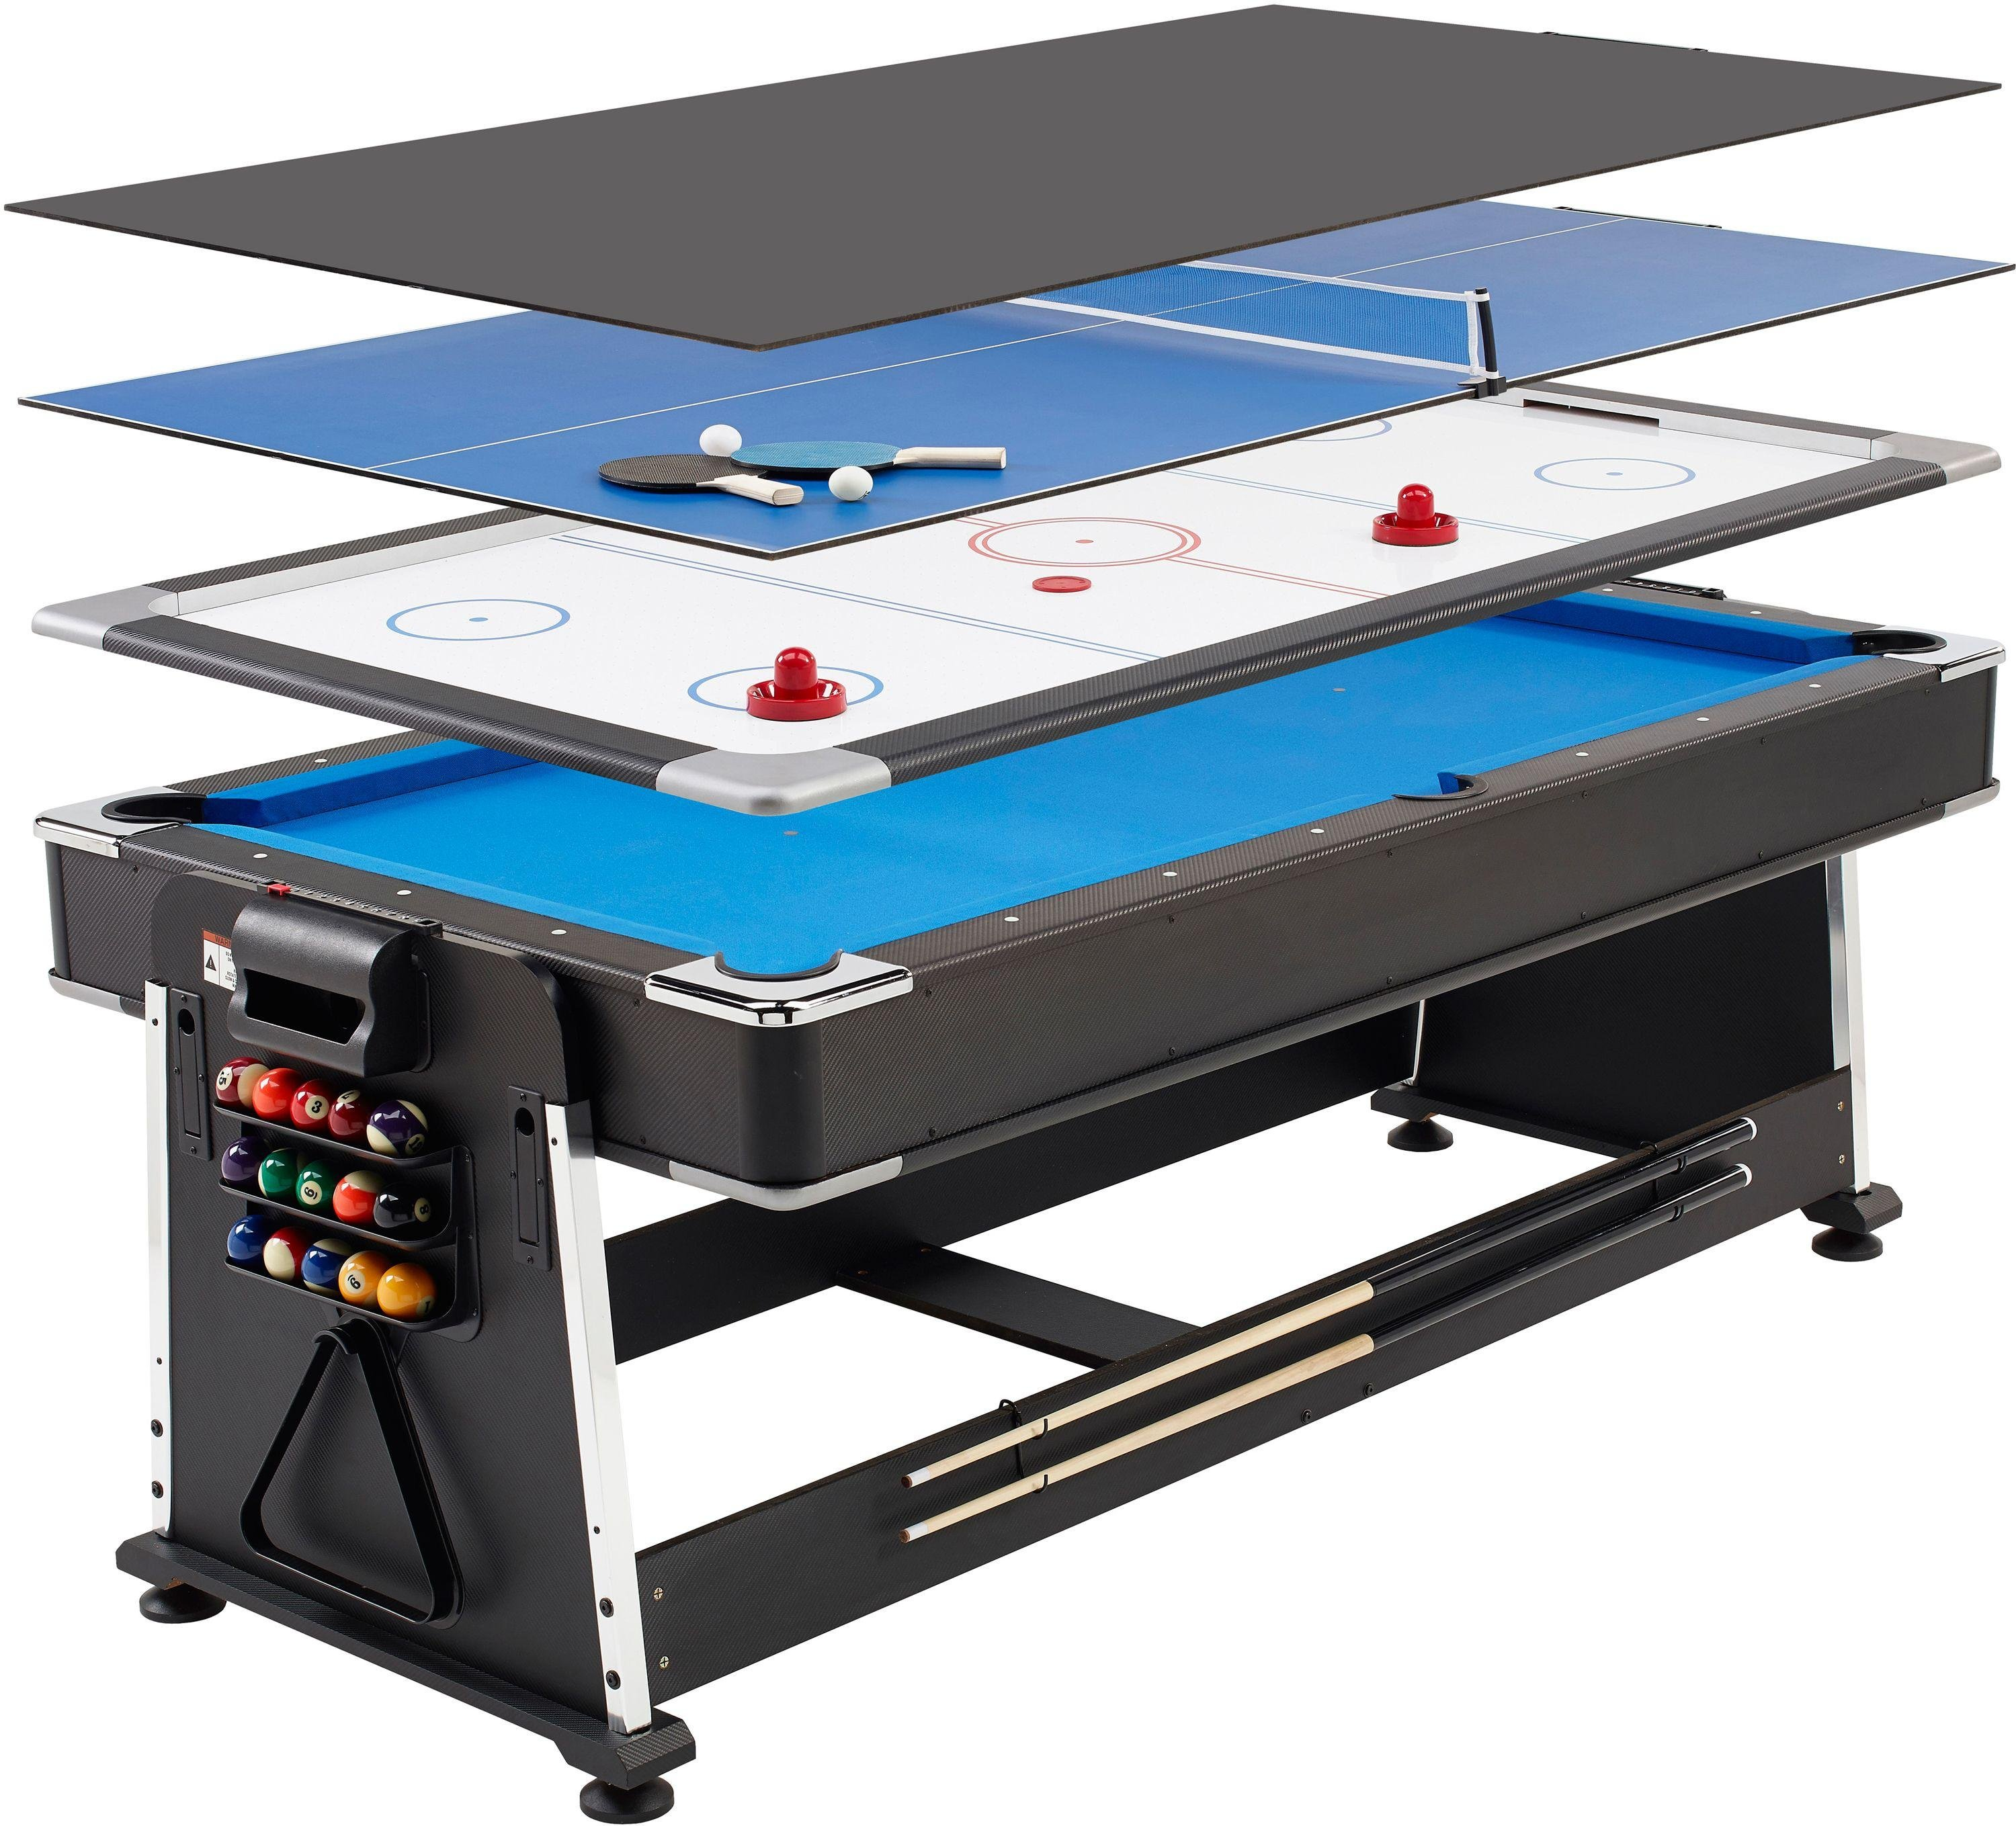 Mightymast Leisure Mightymast Leisure 7ft Revolver 3 in 1 Games Table.